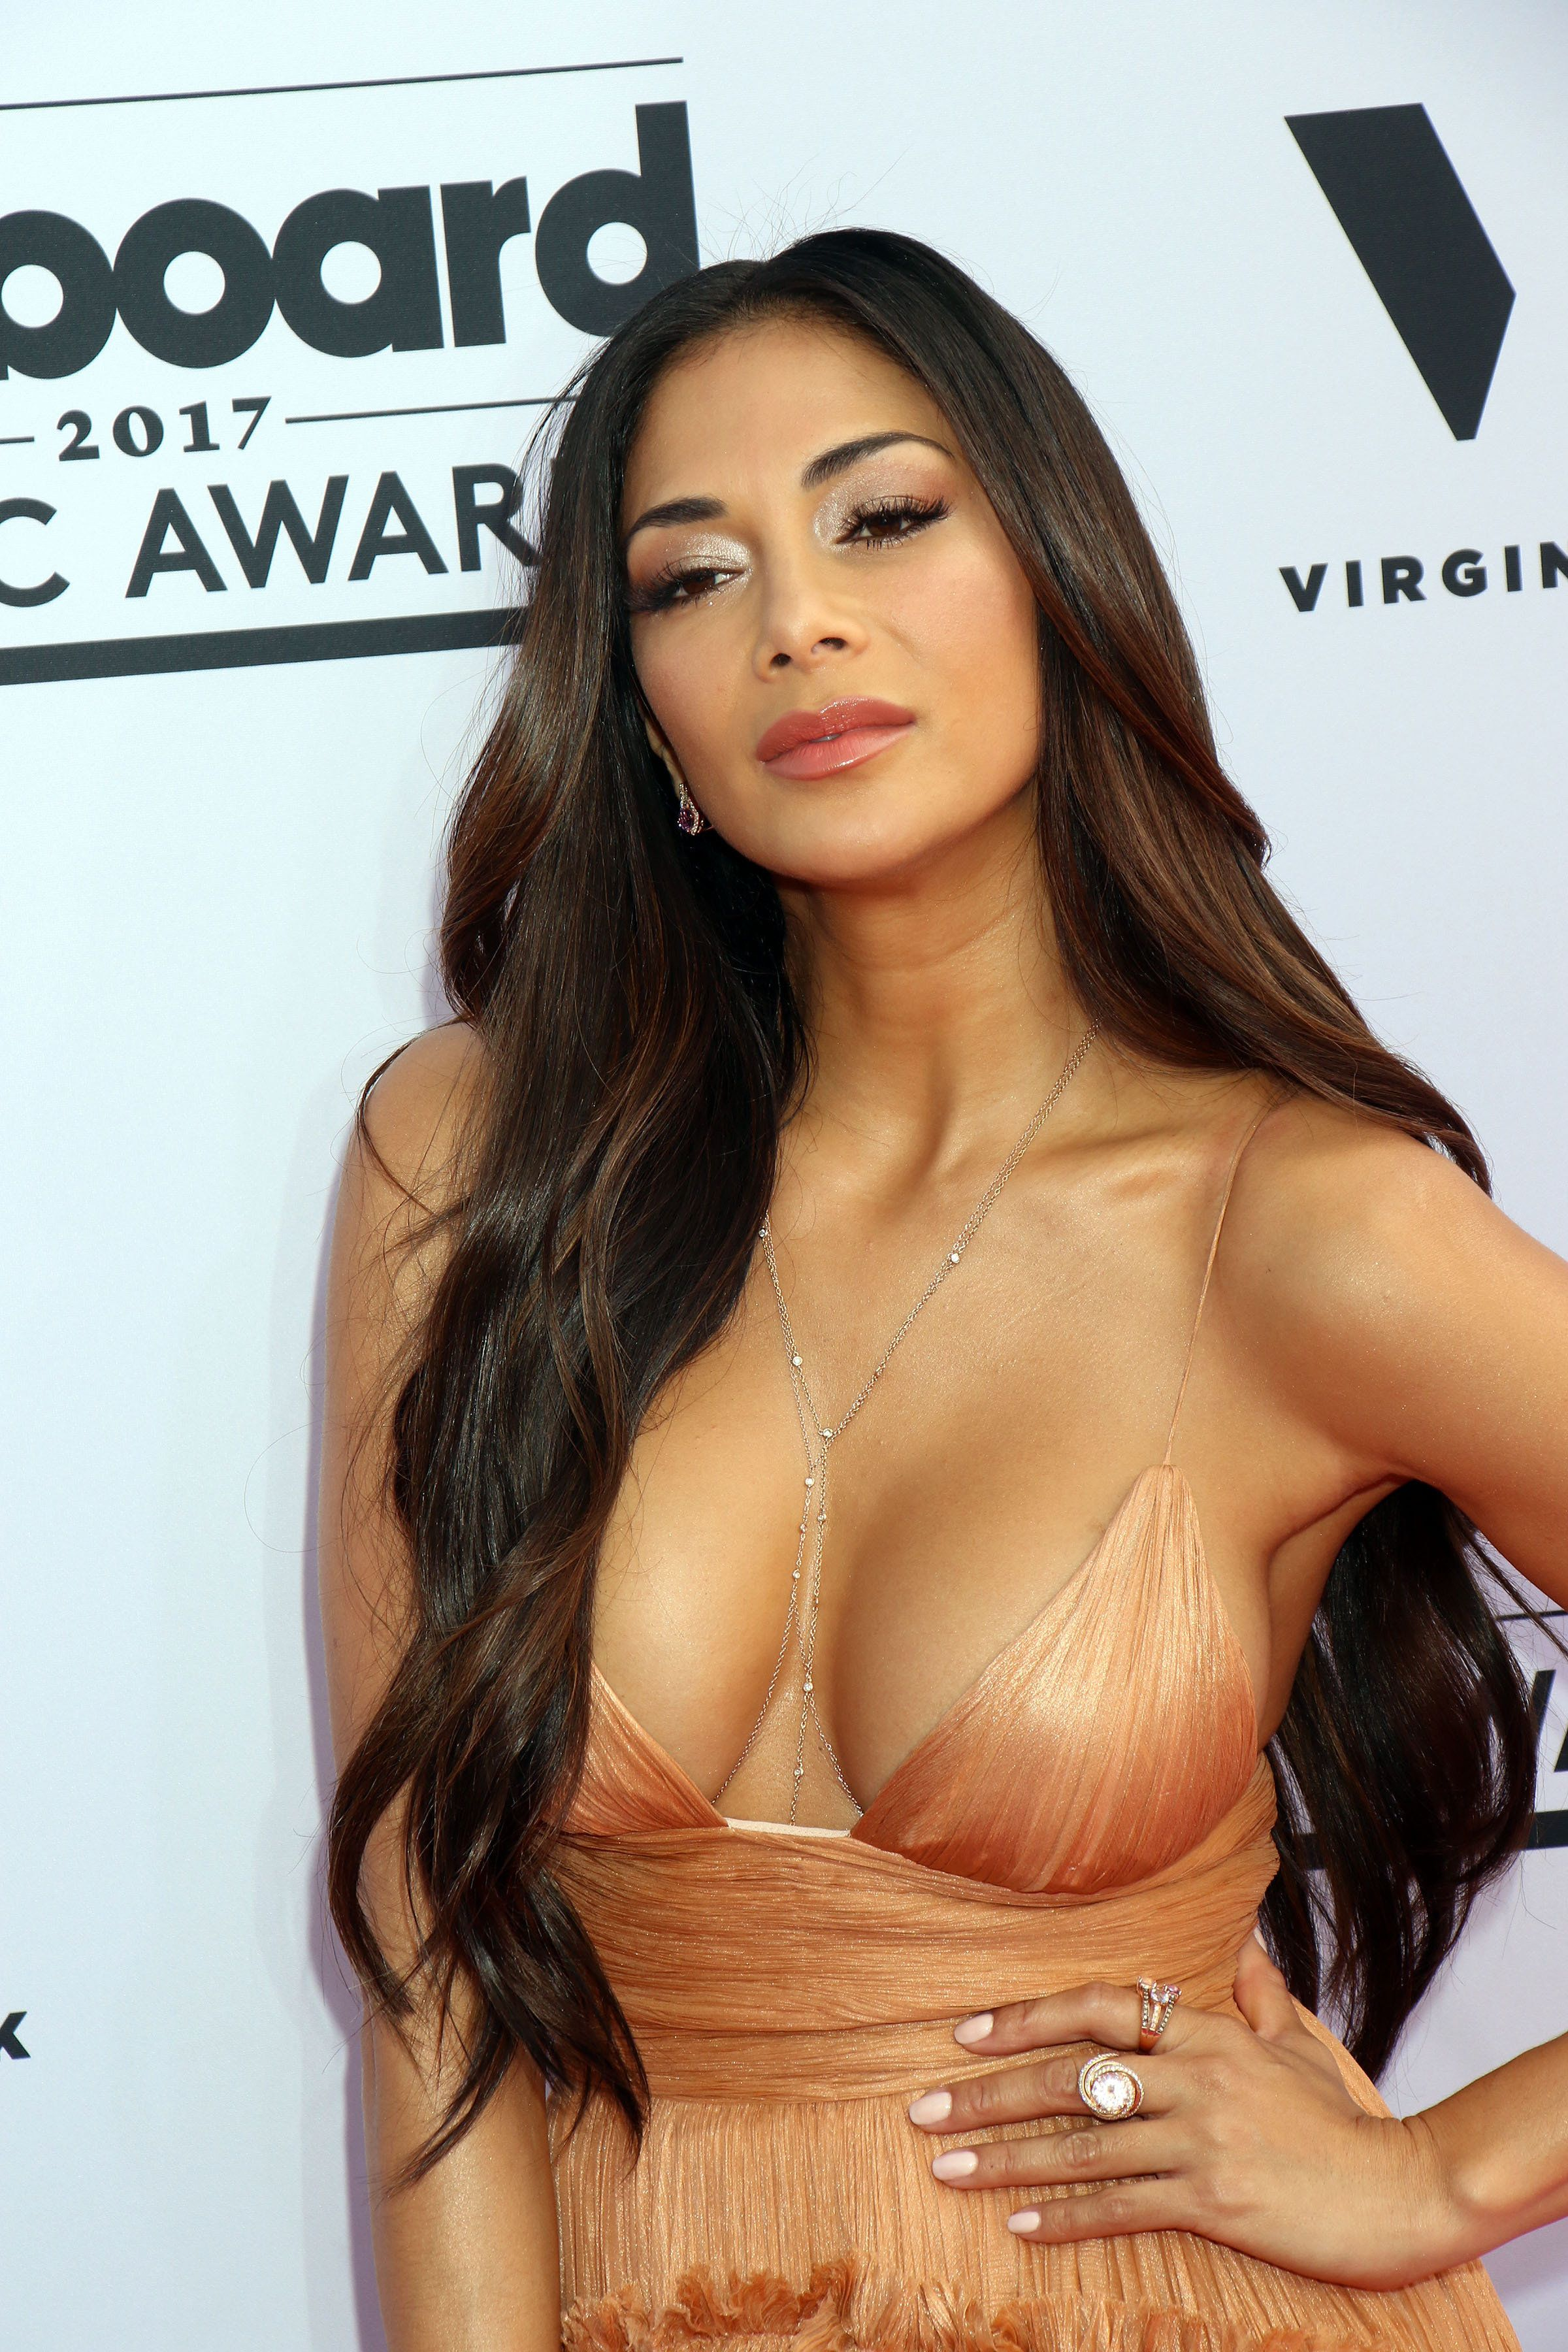 Nicole Scherzinger 'To Miss Filming X Factor Auditions' Due To Family